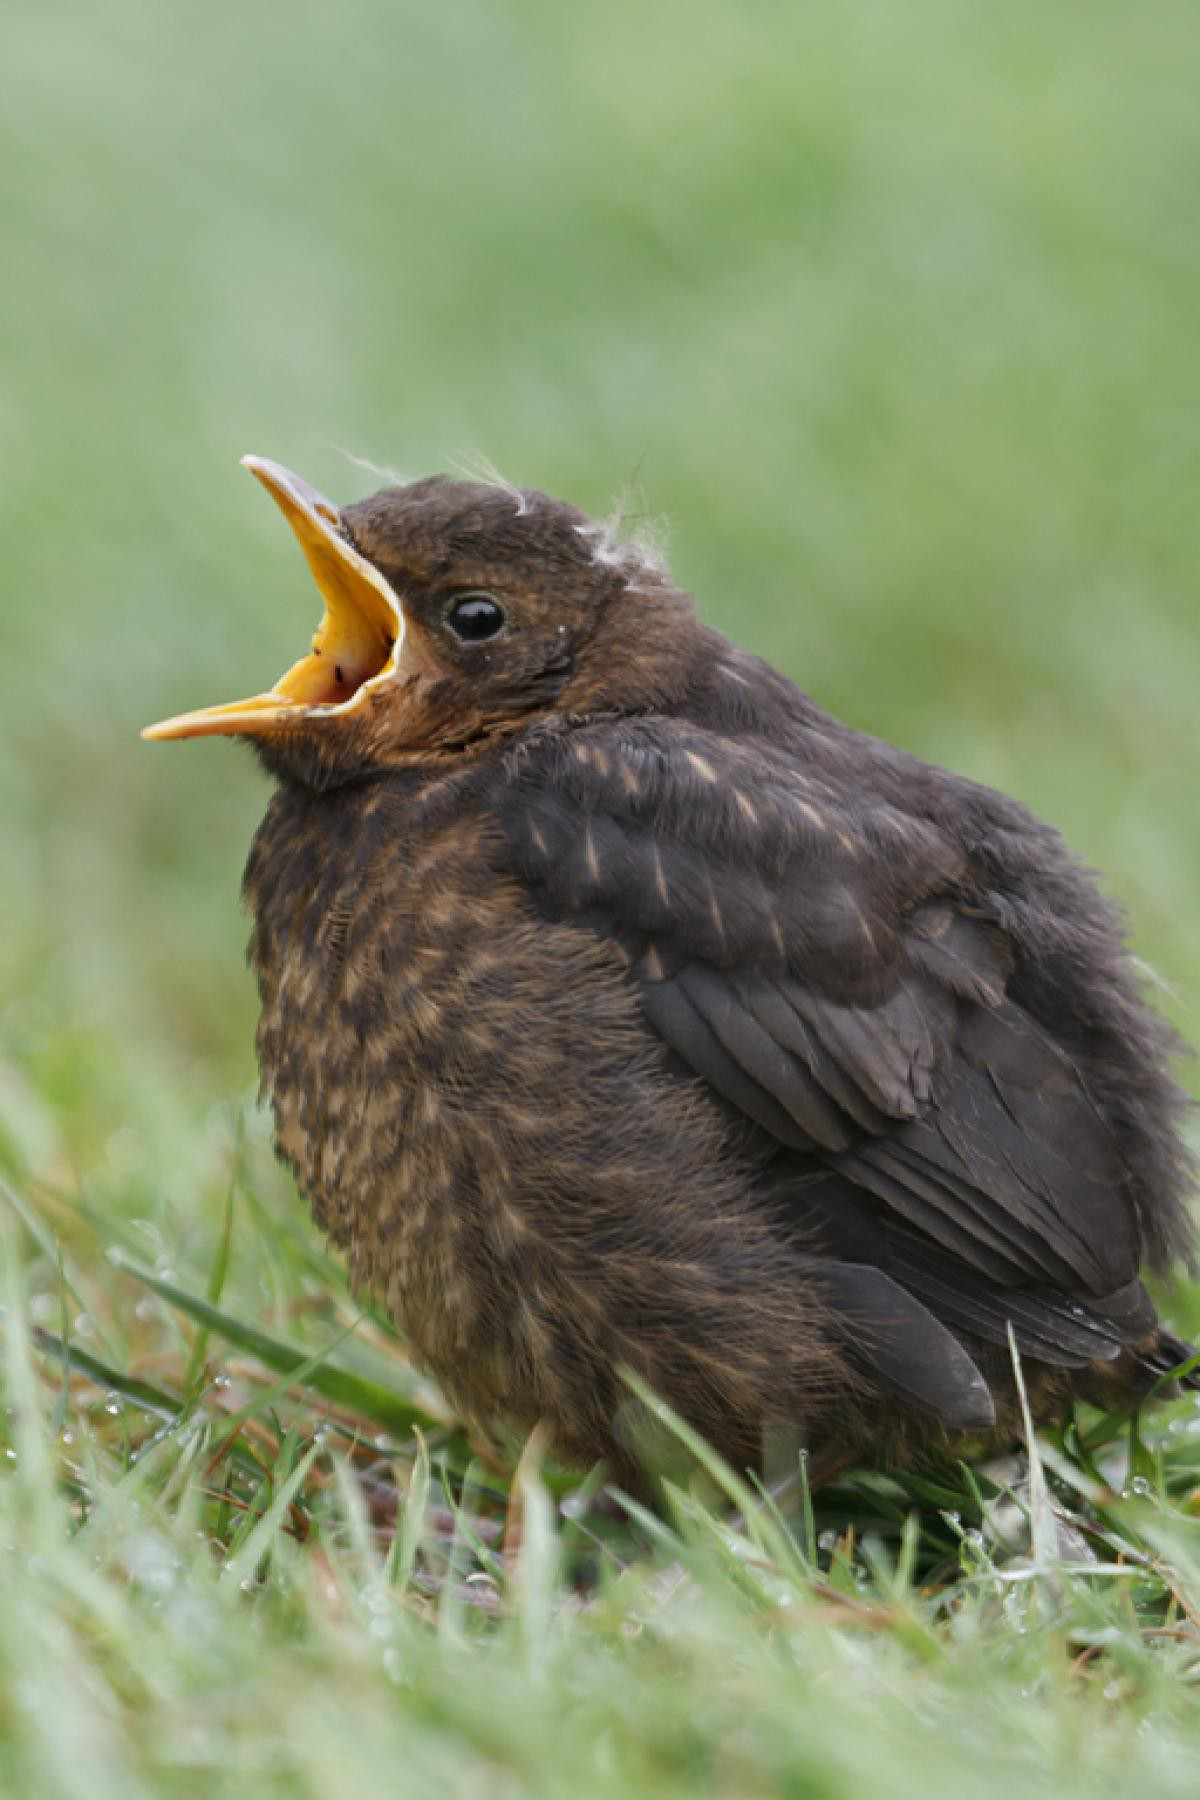 What should you do if you see a baby bird in your garden